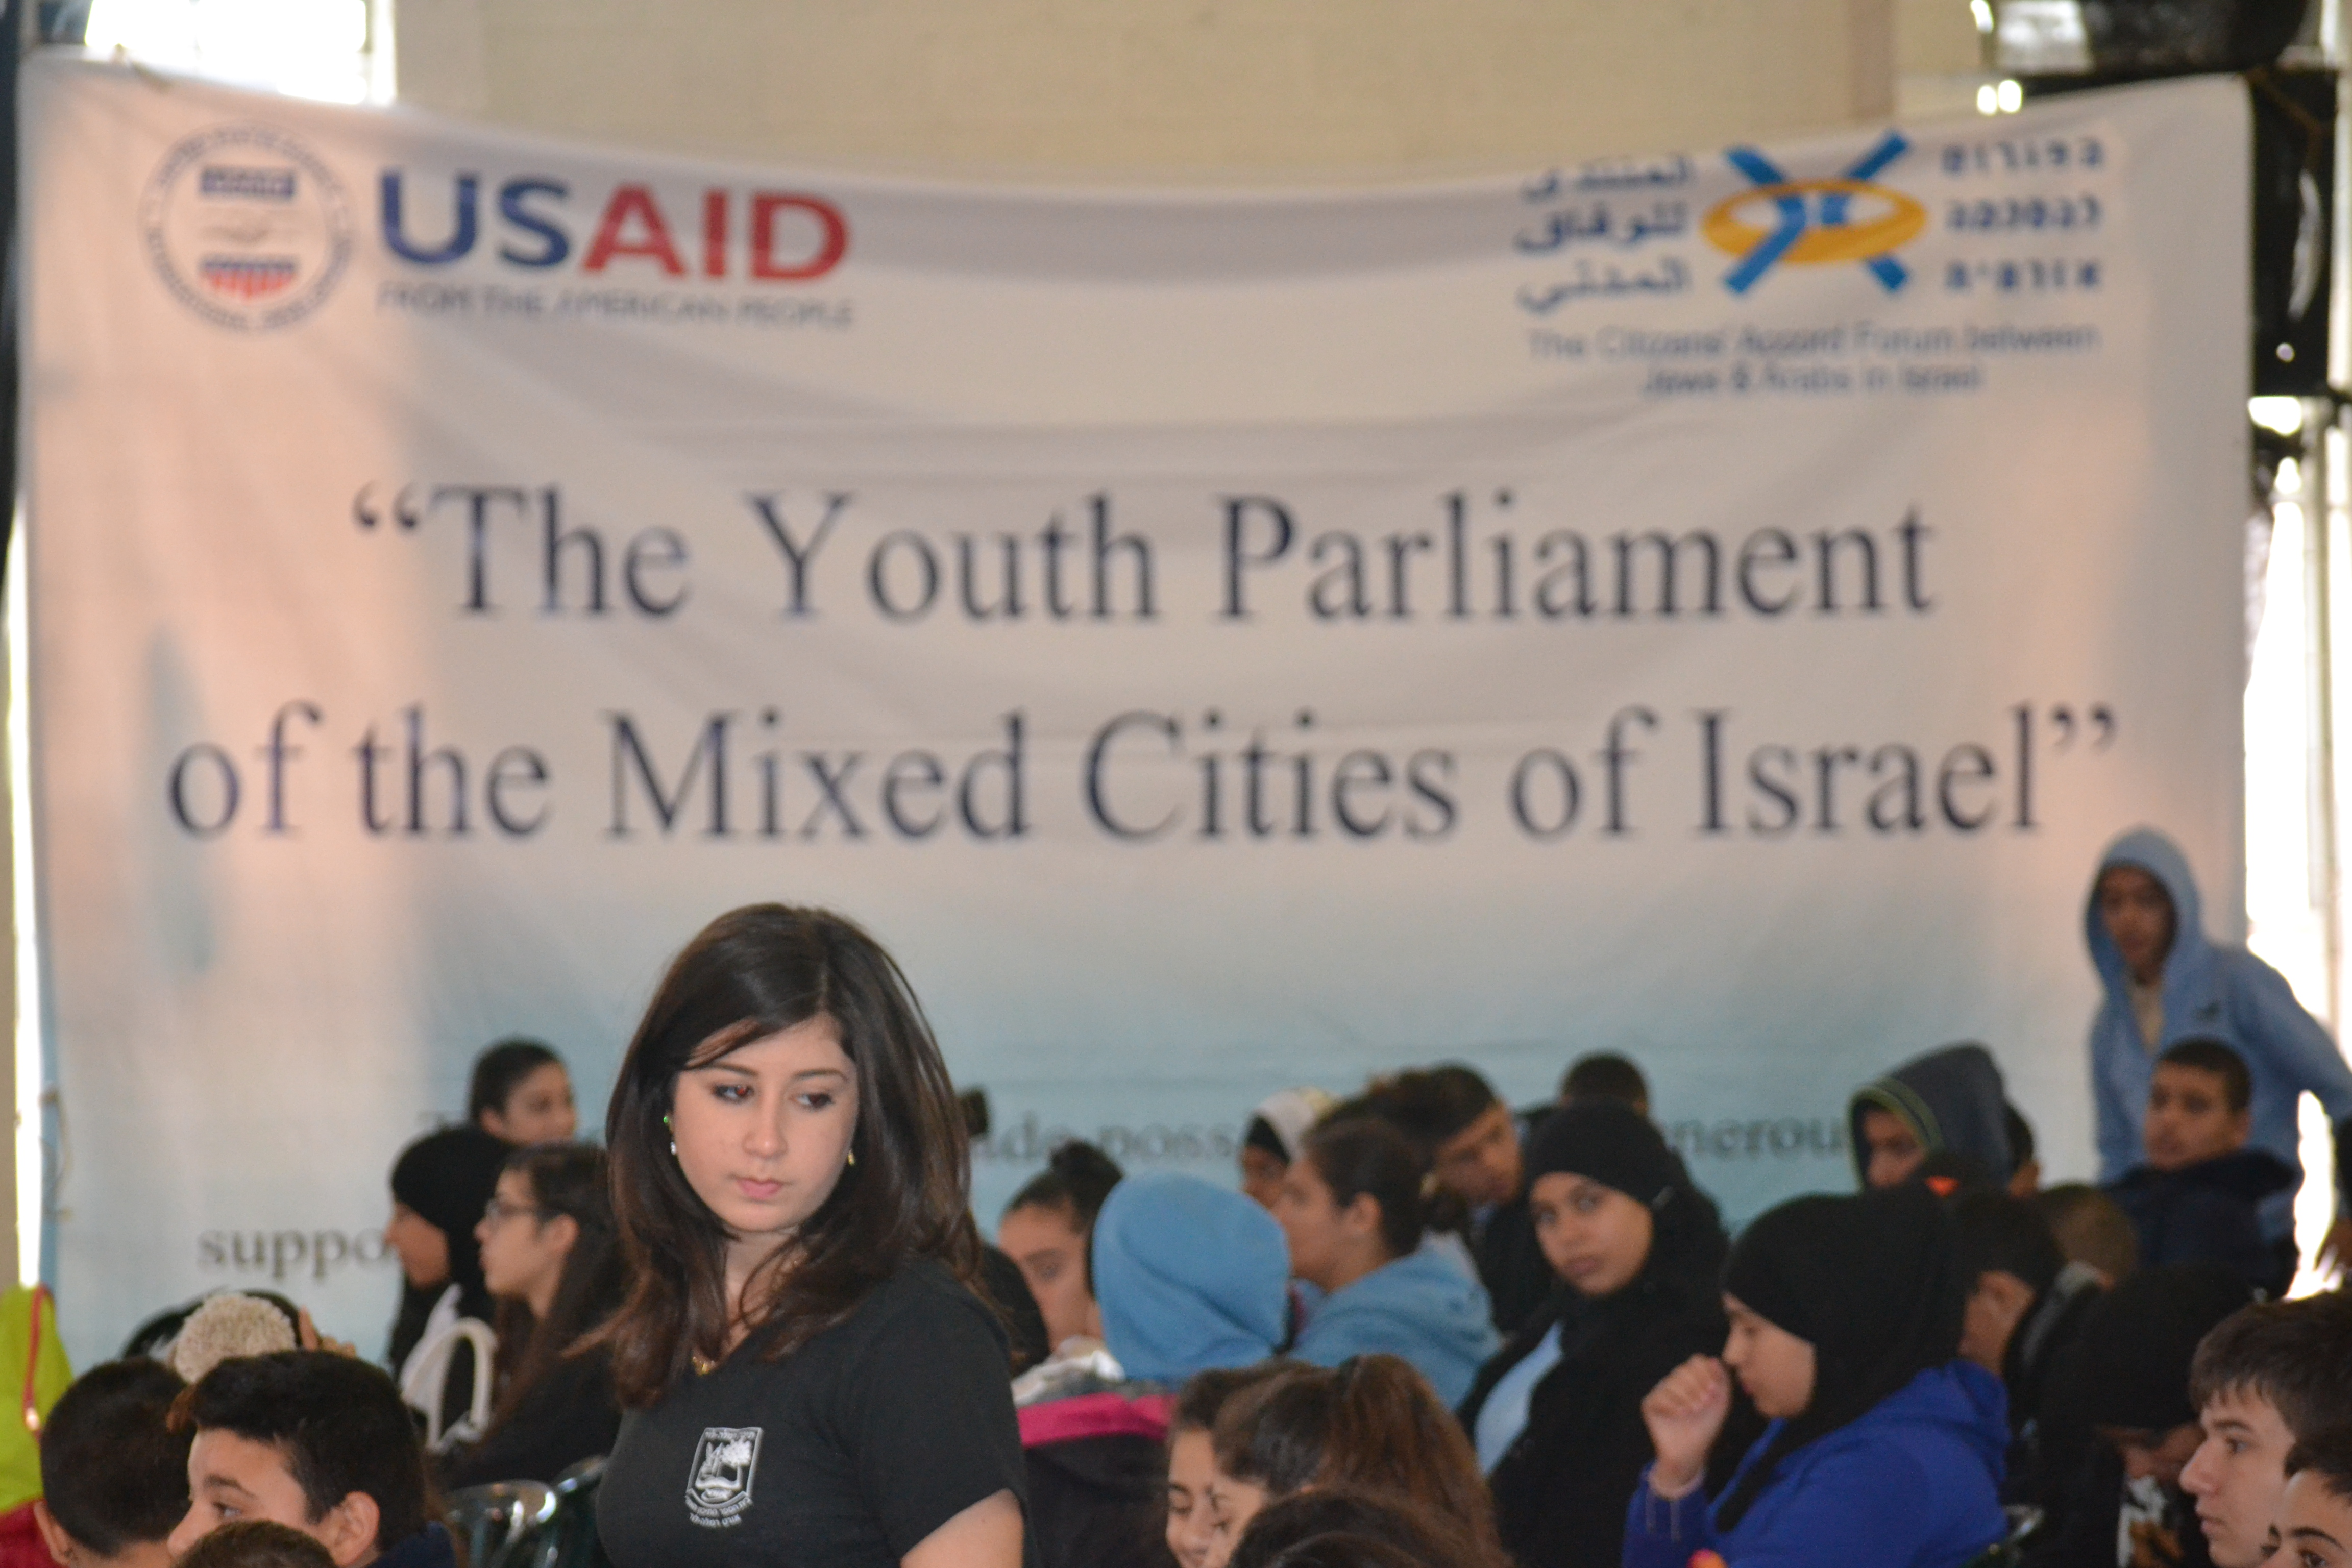 The Youth Parliament of Mixed Cities